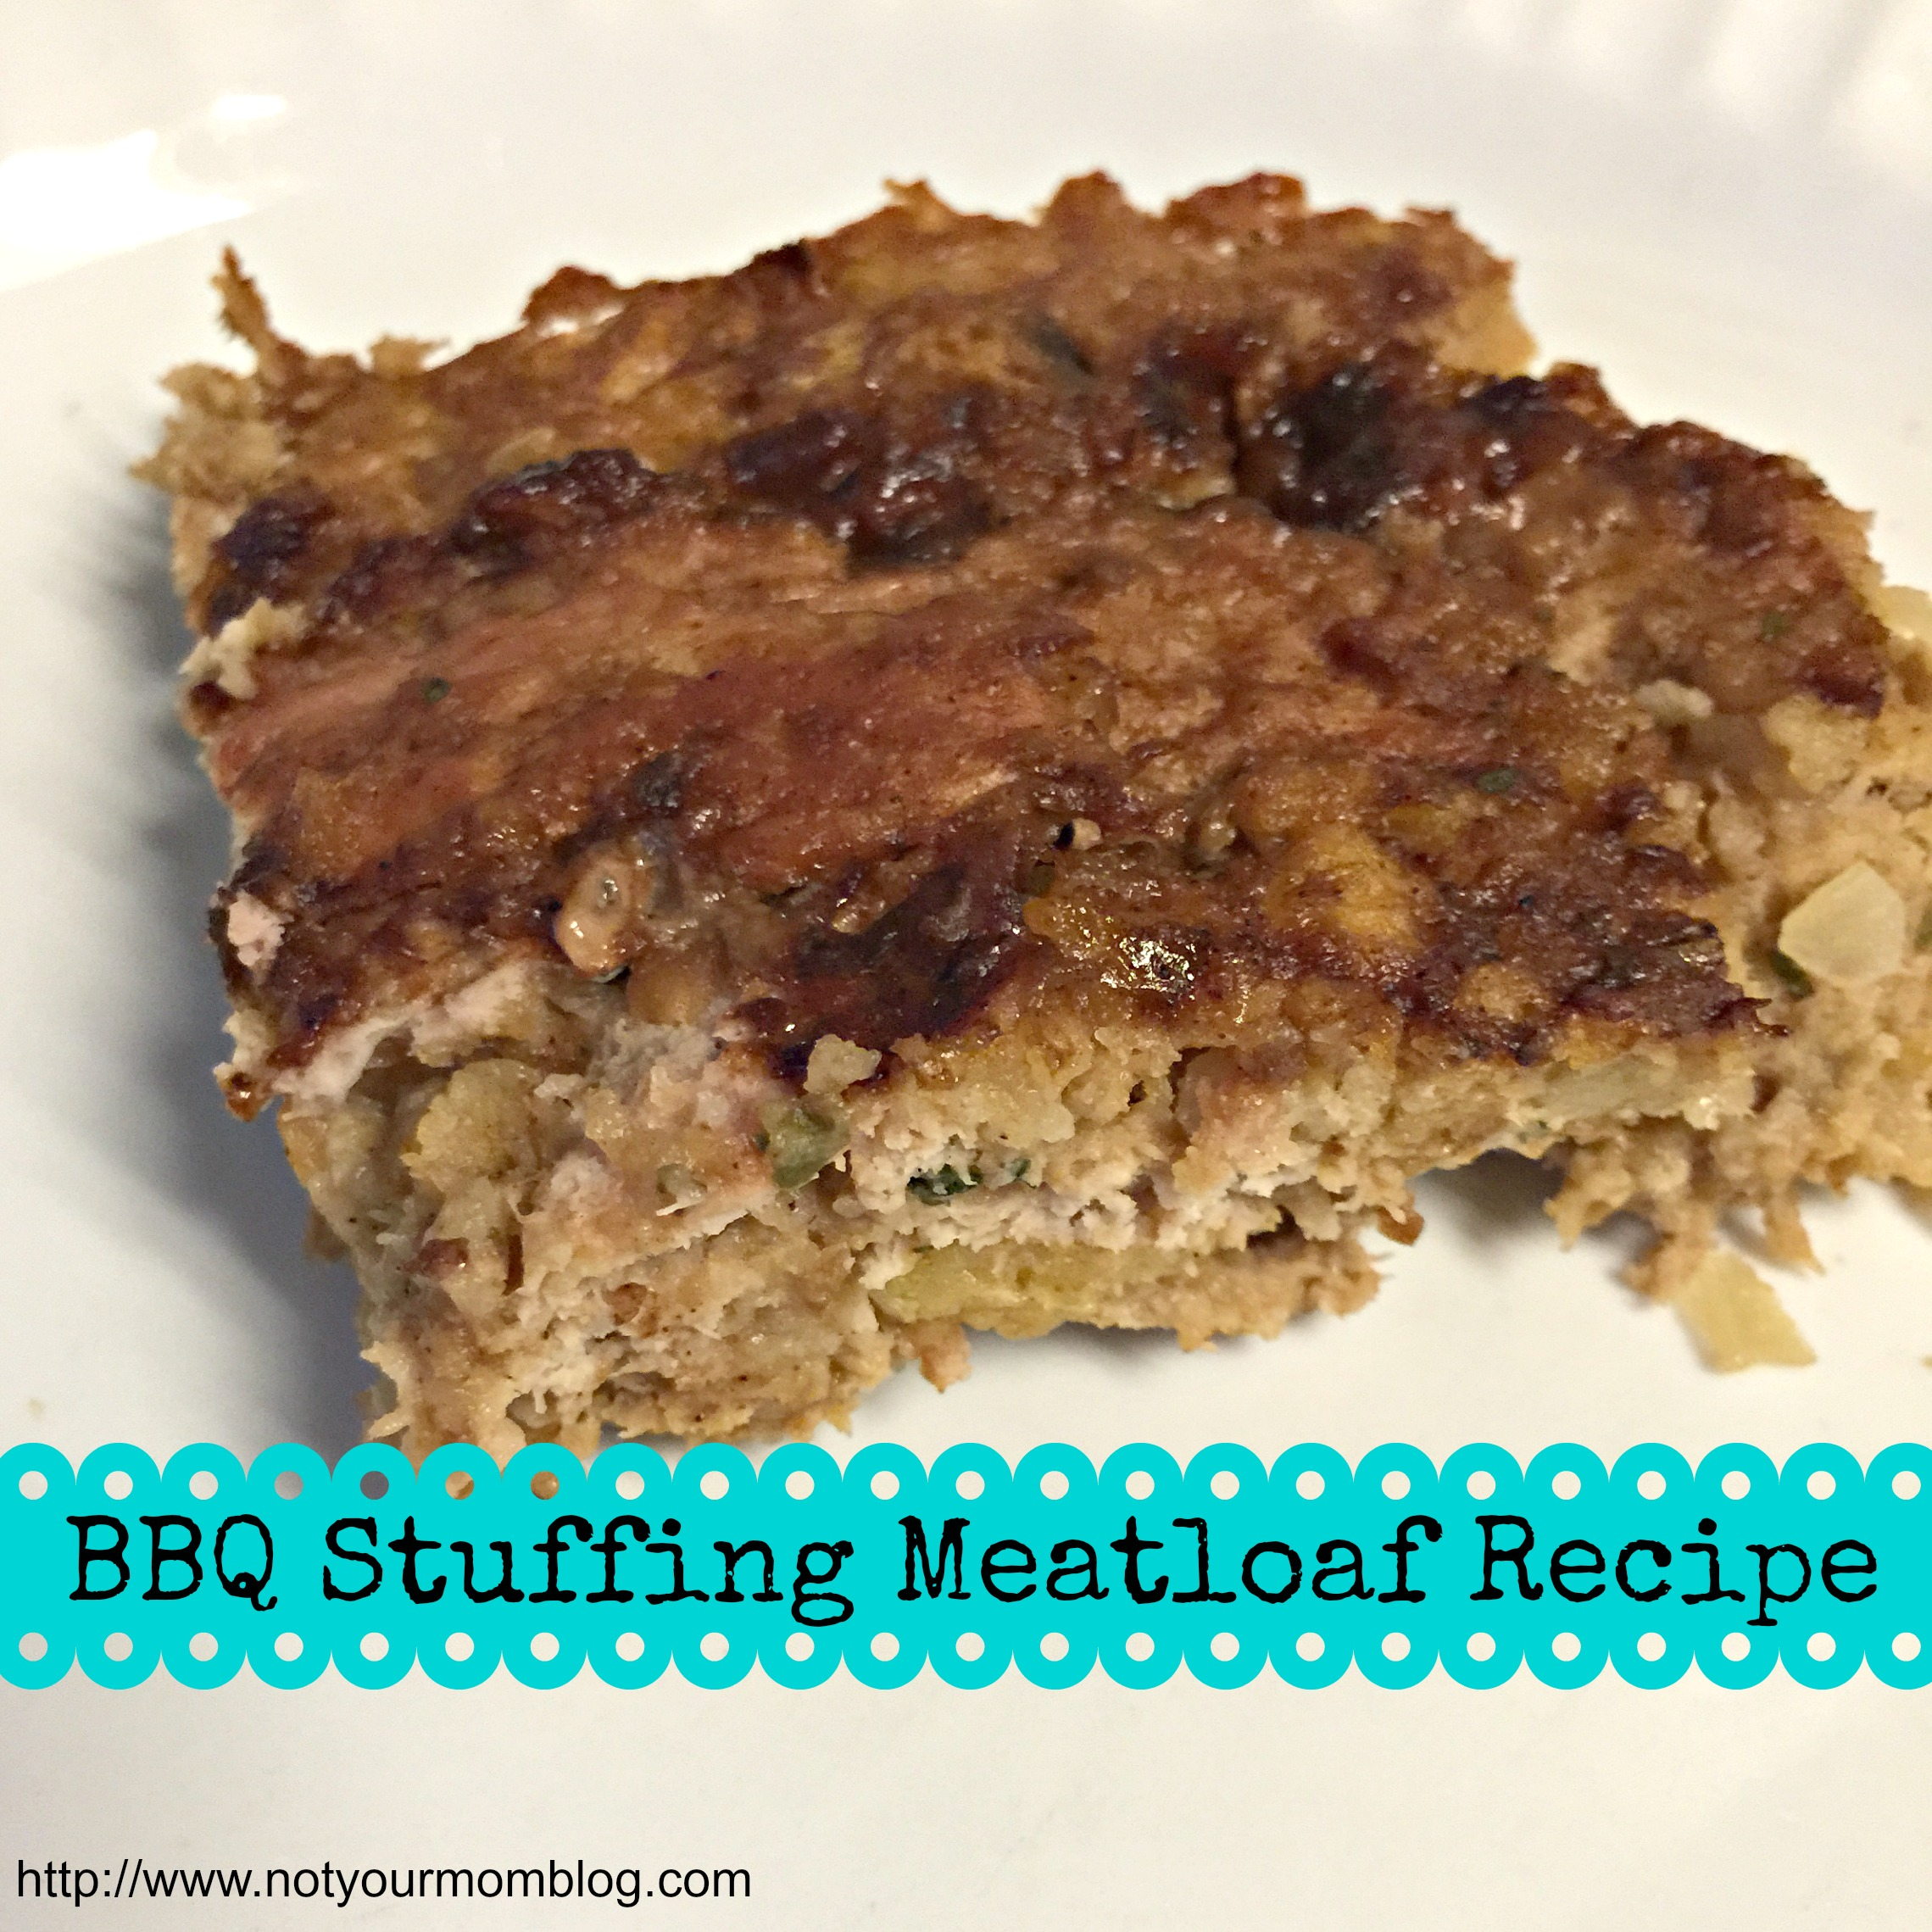 BBQ Stuffing Meatloaf Recipe